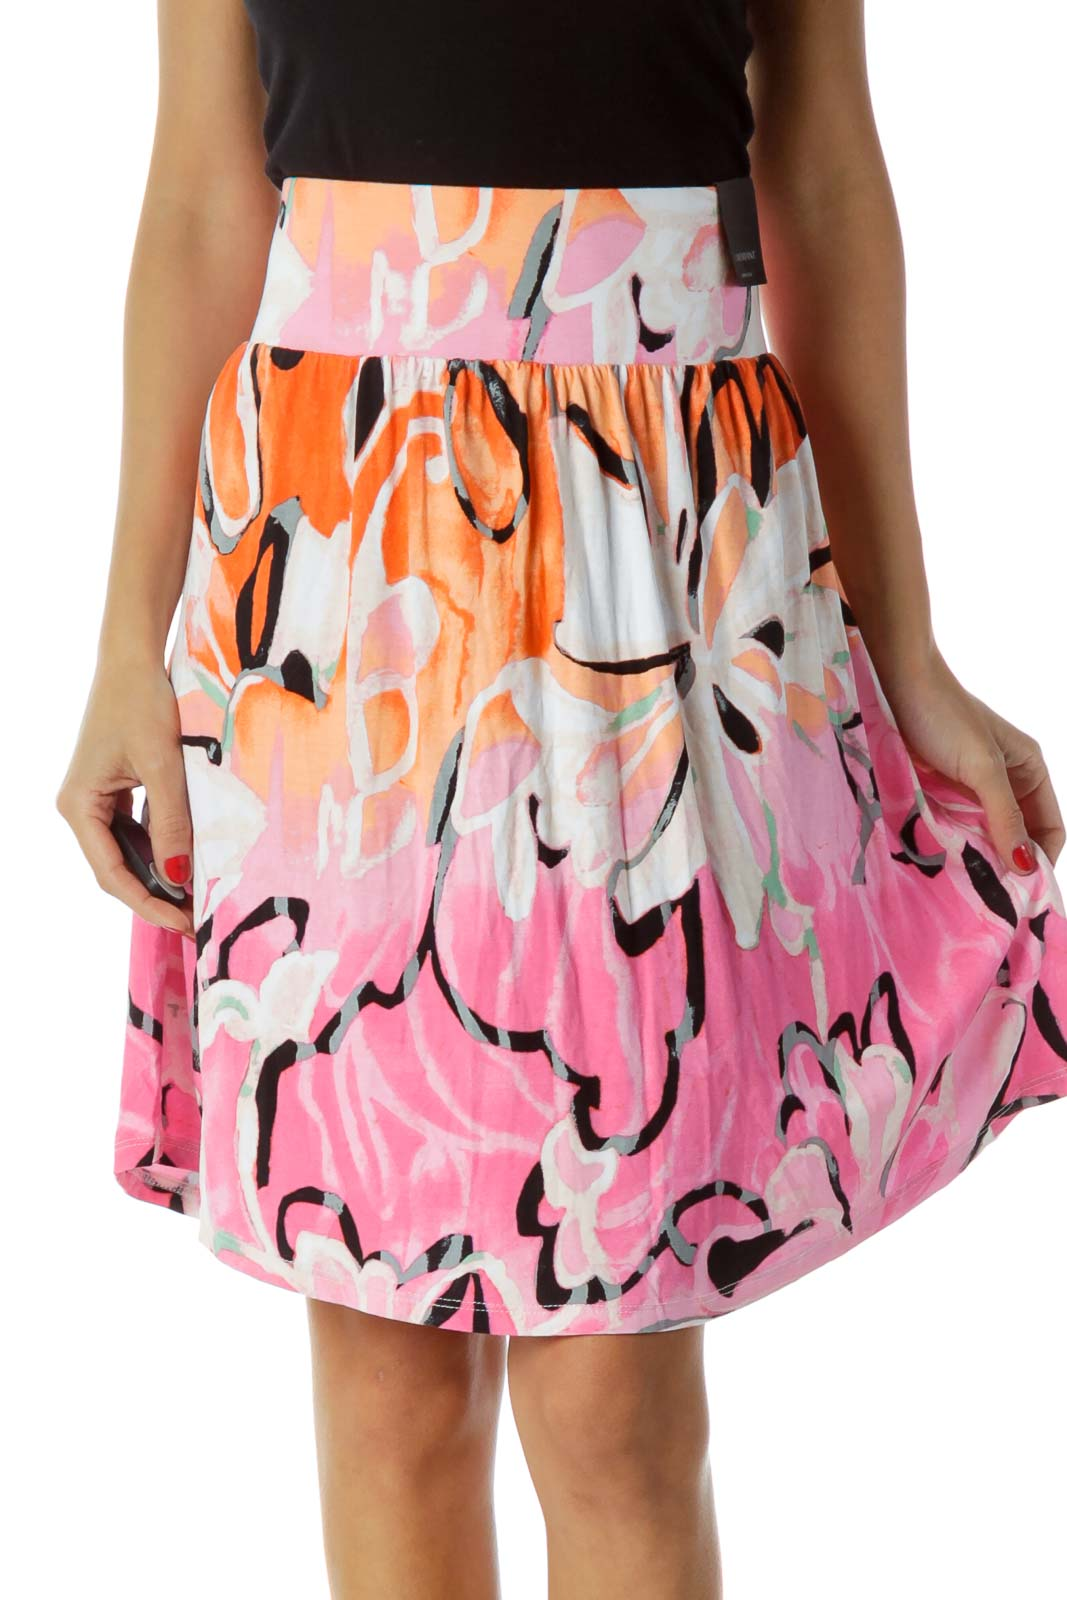 Pink Orange A-Line Mini Skirt